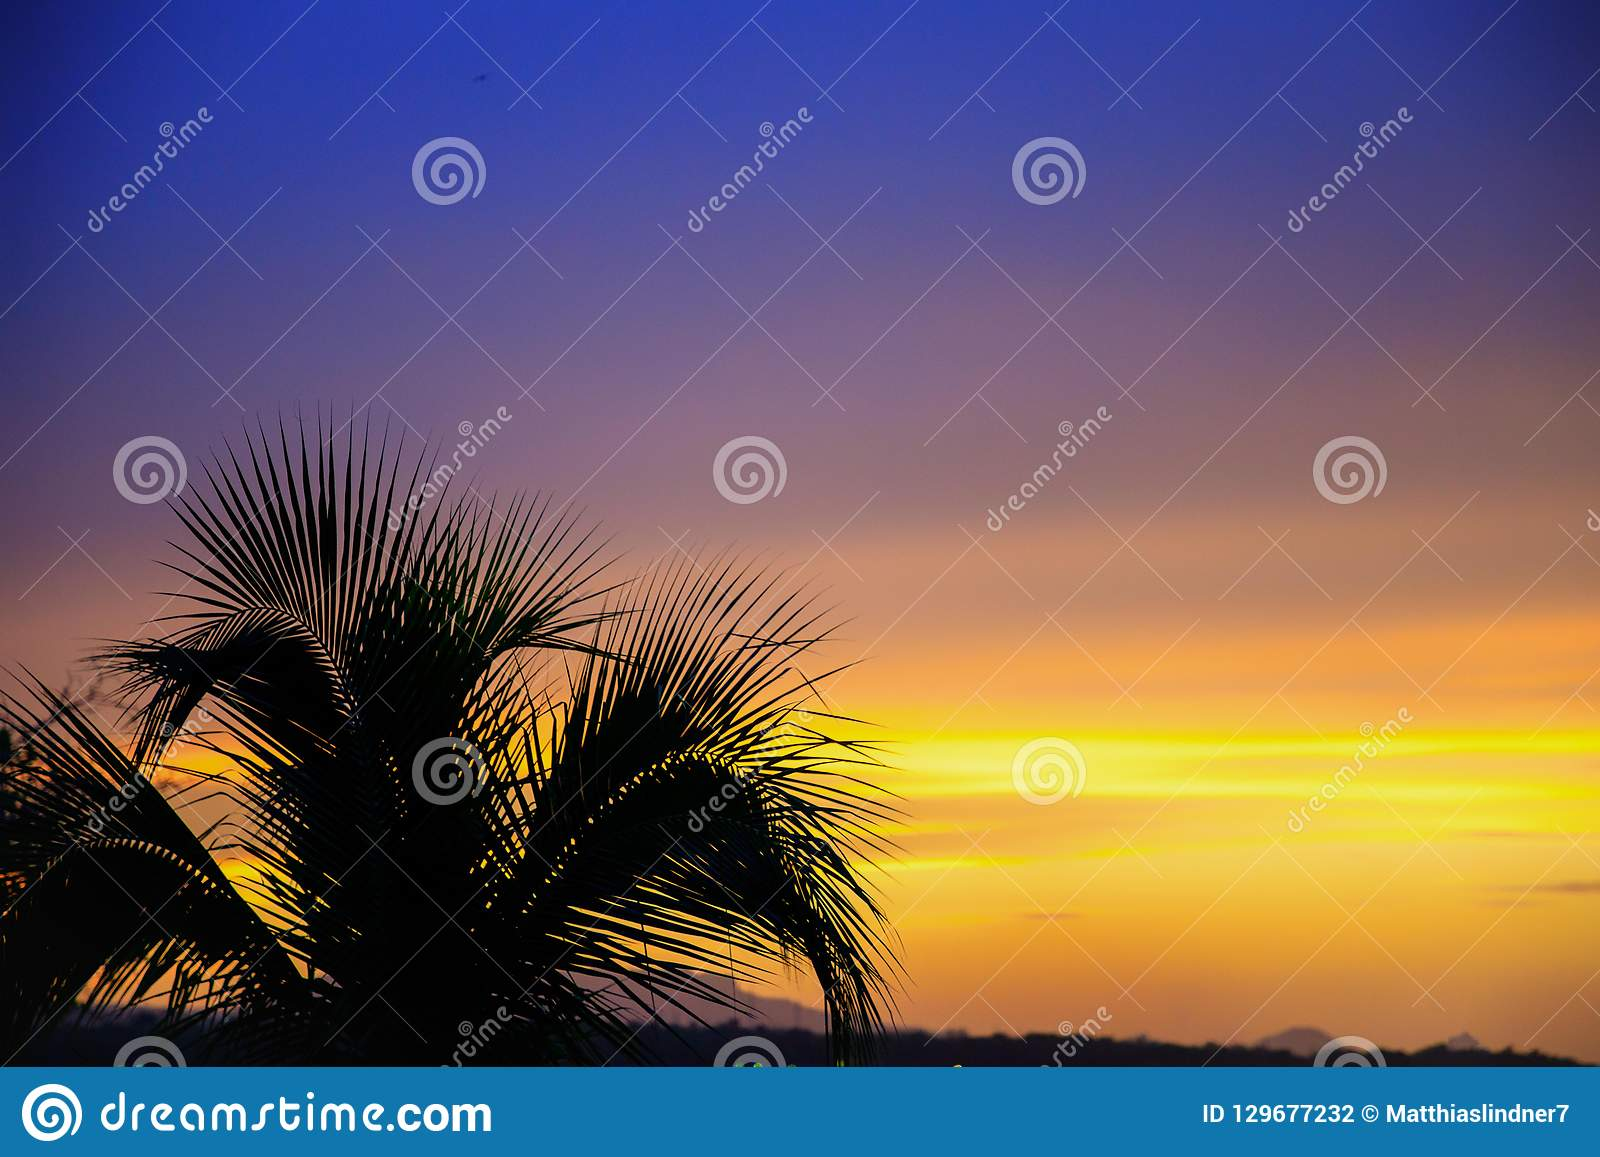 Silhouette of a palm tree in front of an orange and purple sunse